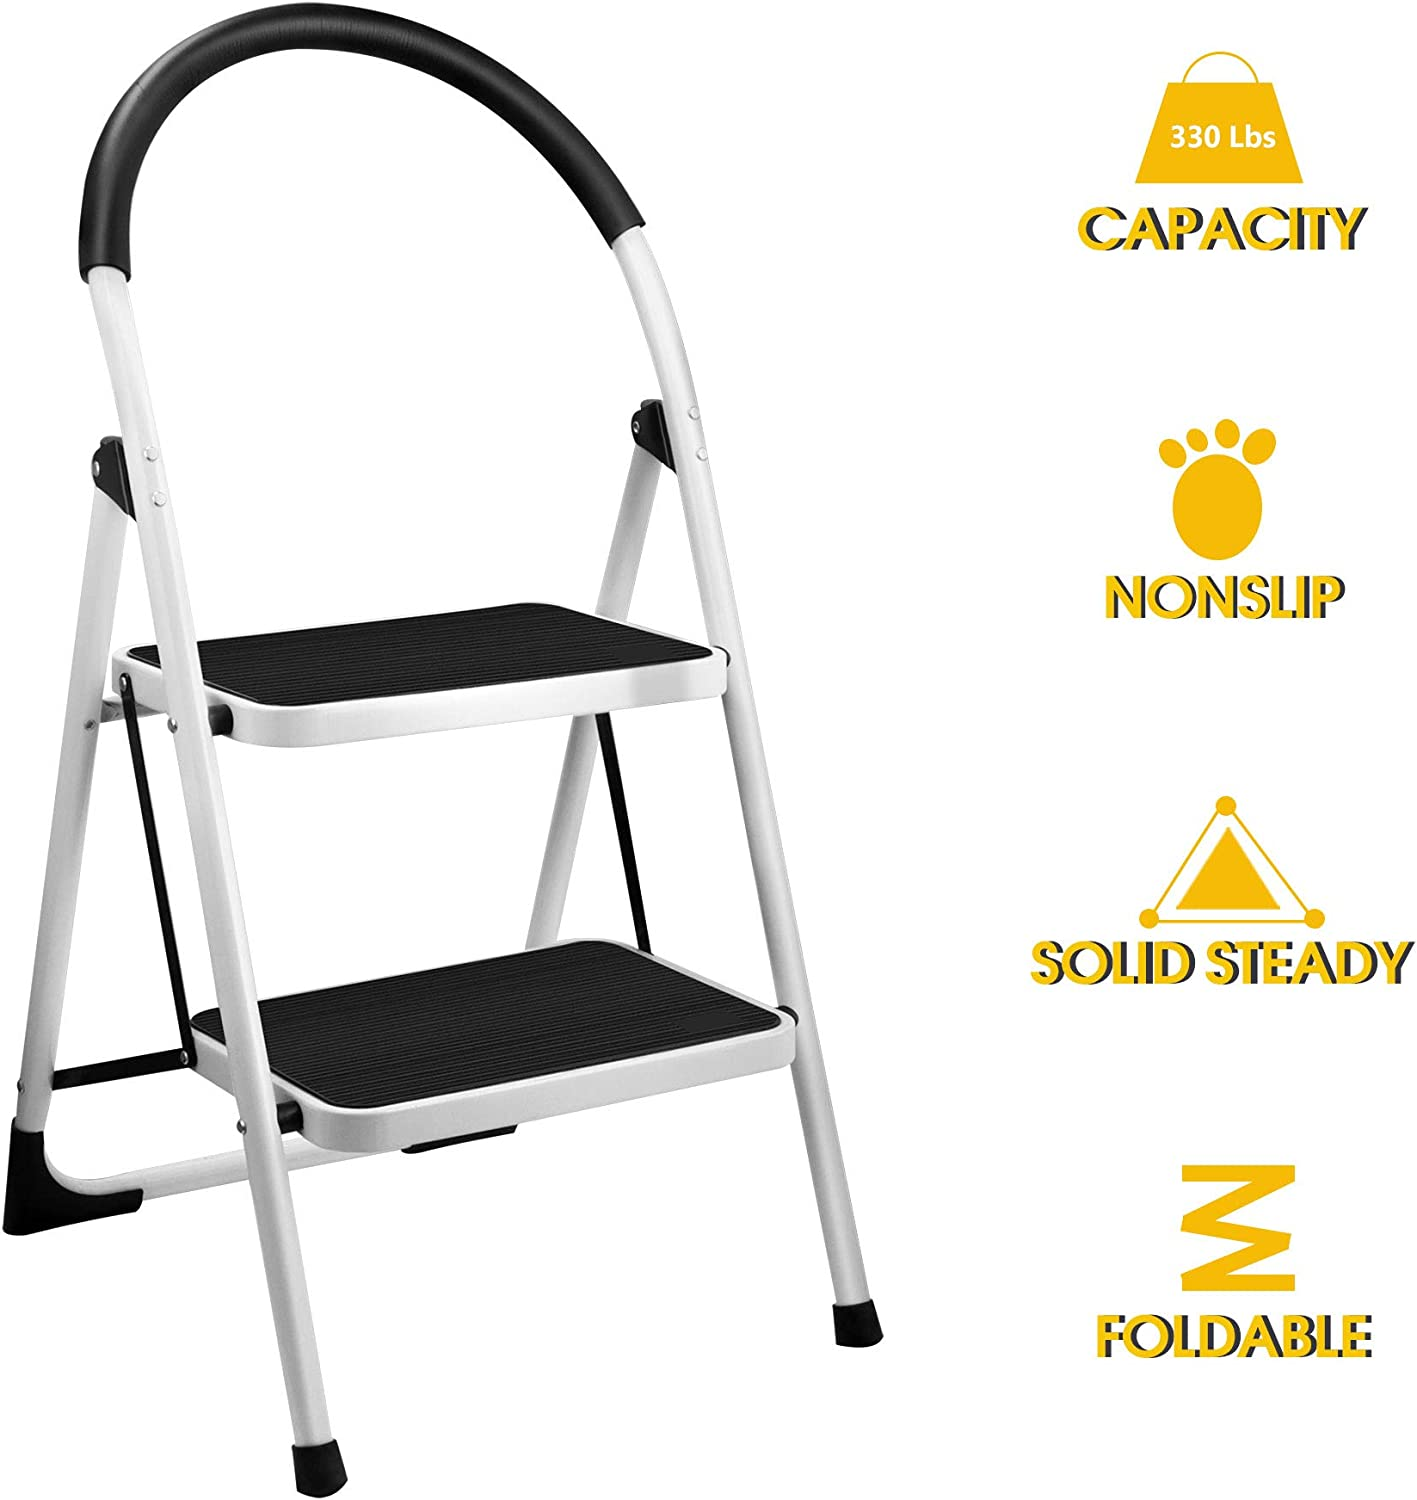 2 Step Stool, Gimify Folding Step Ladder Steel Stepladders (Upgraded Version) Non-Slip Sturdy Steps Wide Pedal with Comfortable Hand Grip for Home Kitchen Garden Office 330 lbs